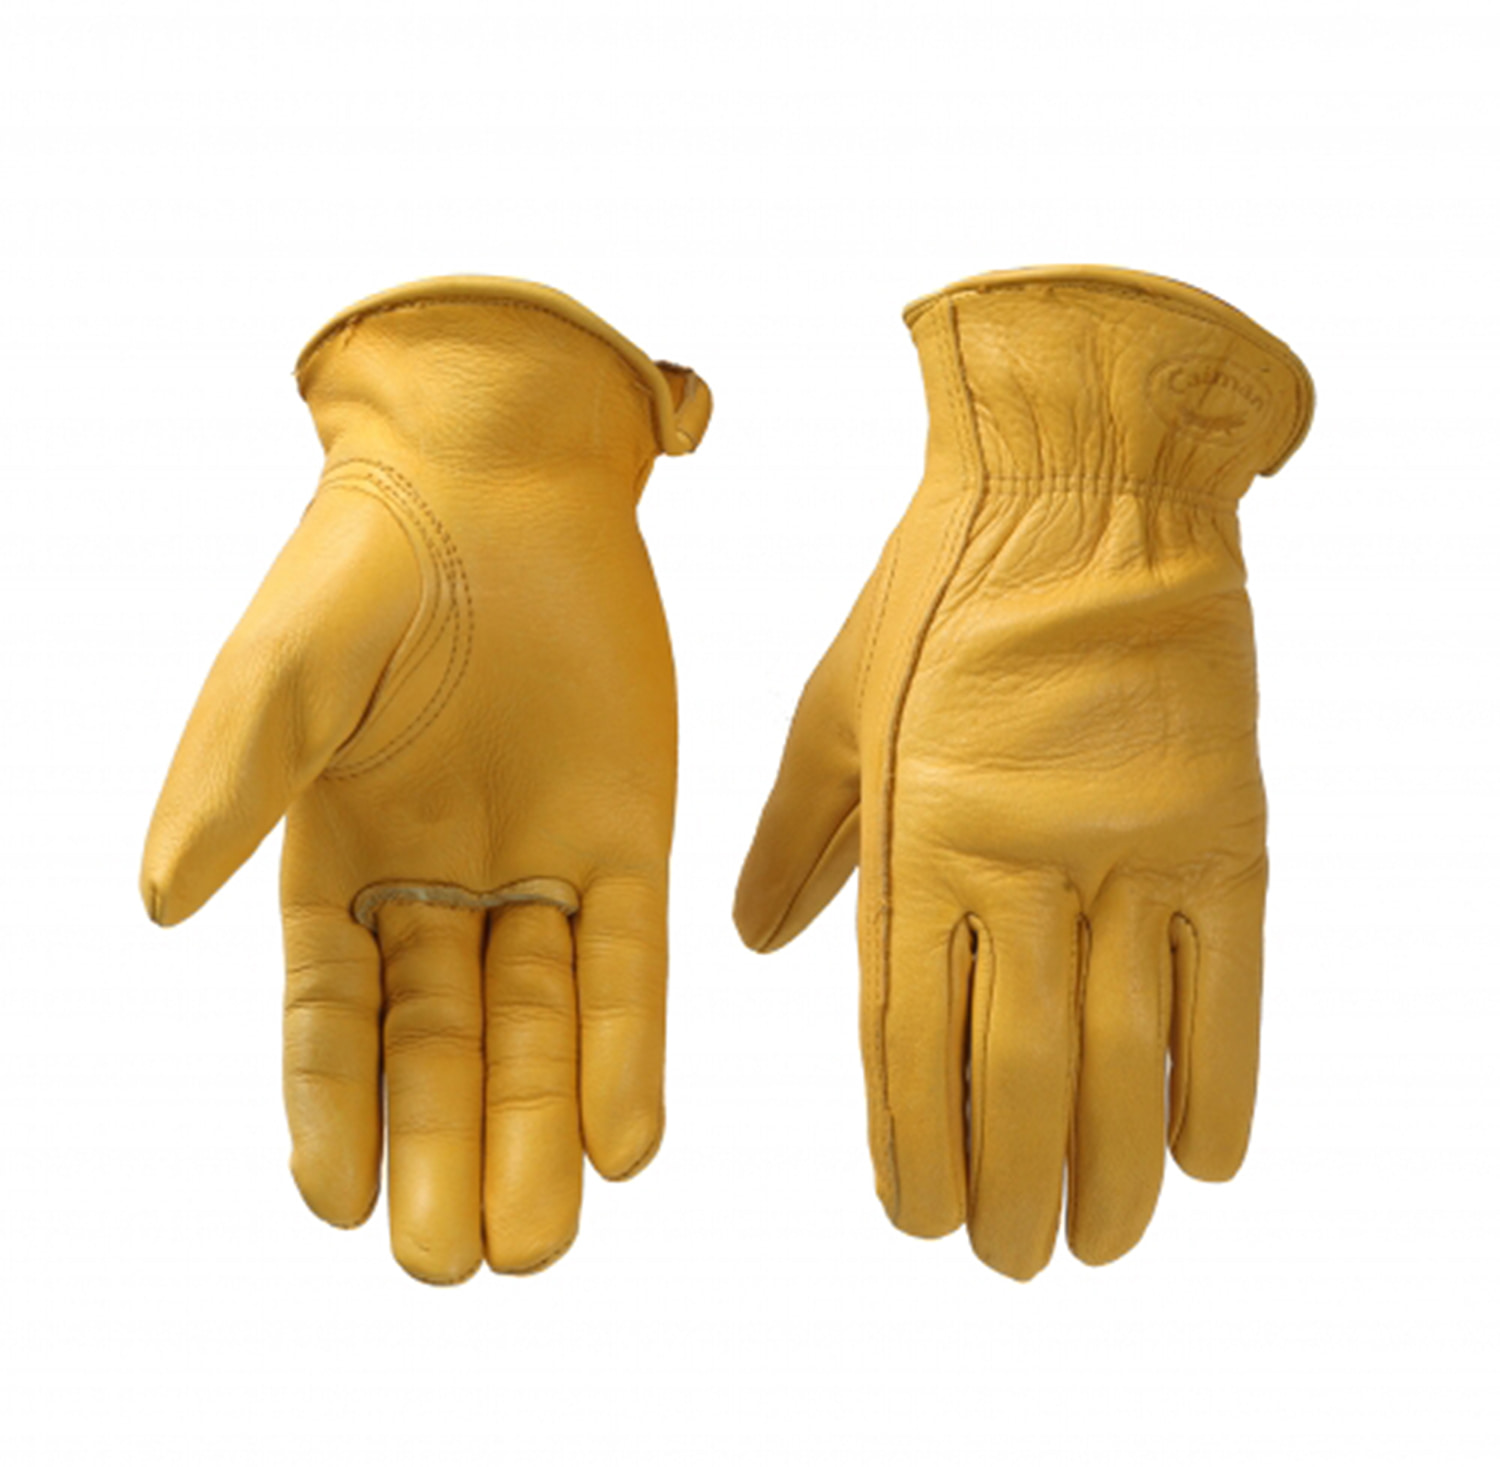 CAIMAN KOREA - Gold Basic Drivers Gloves